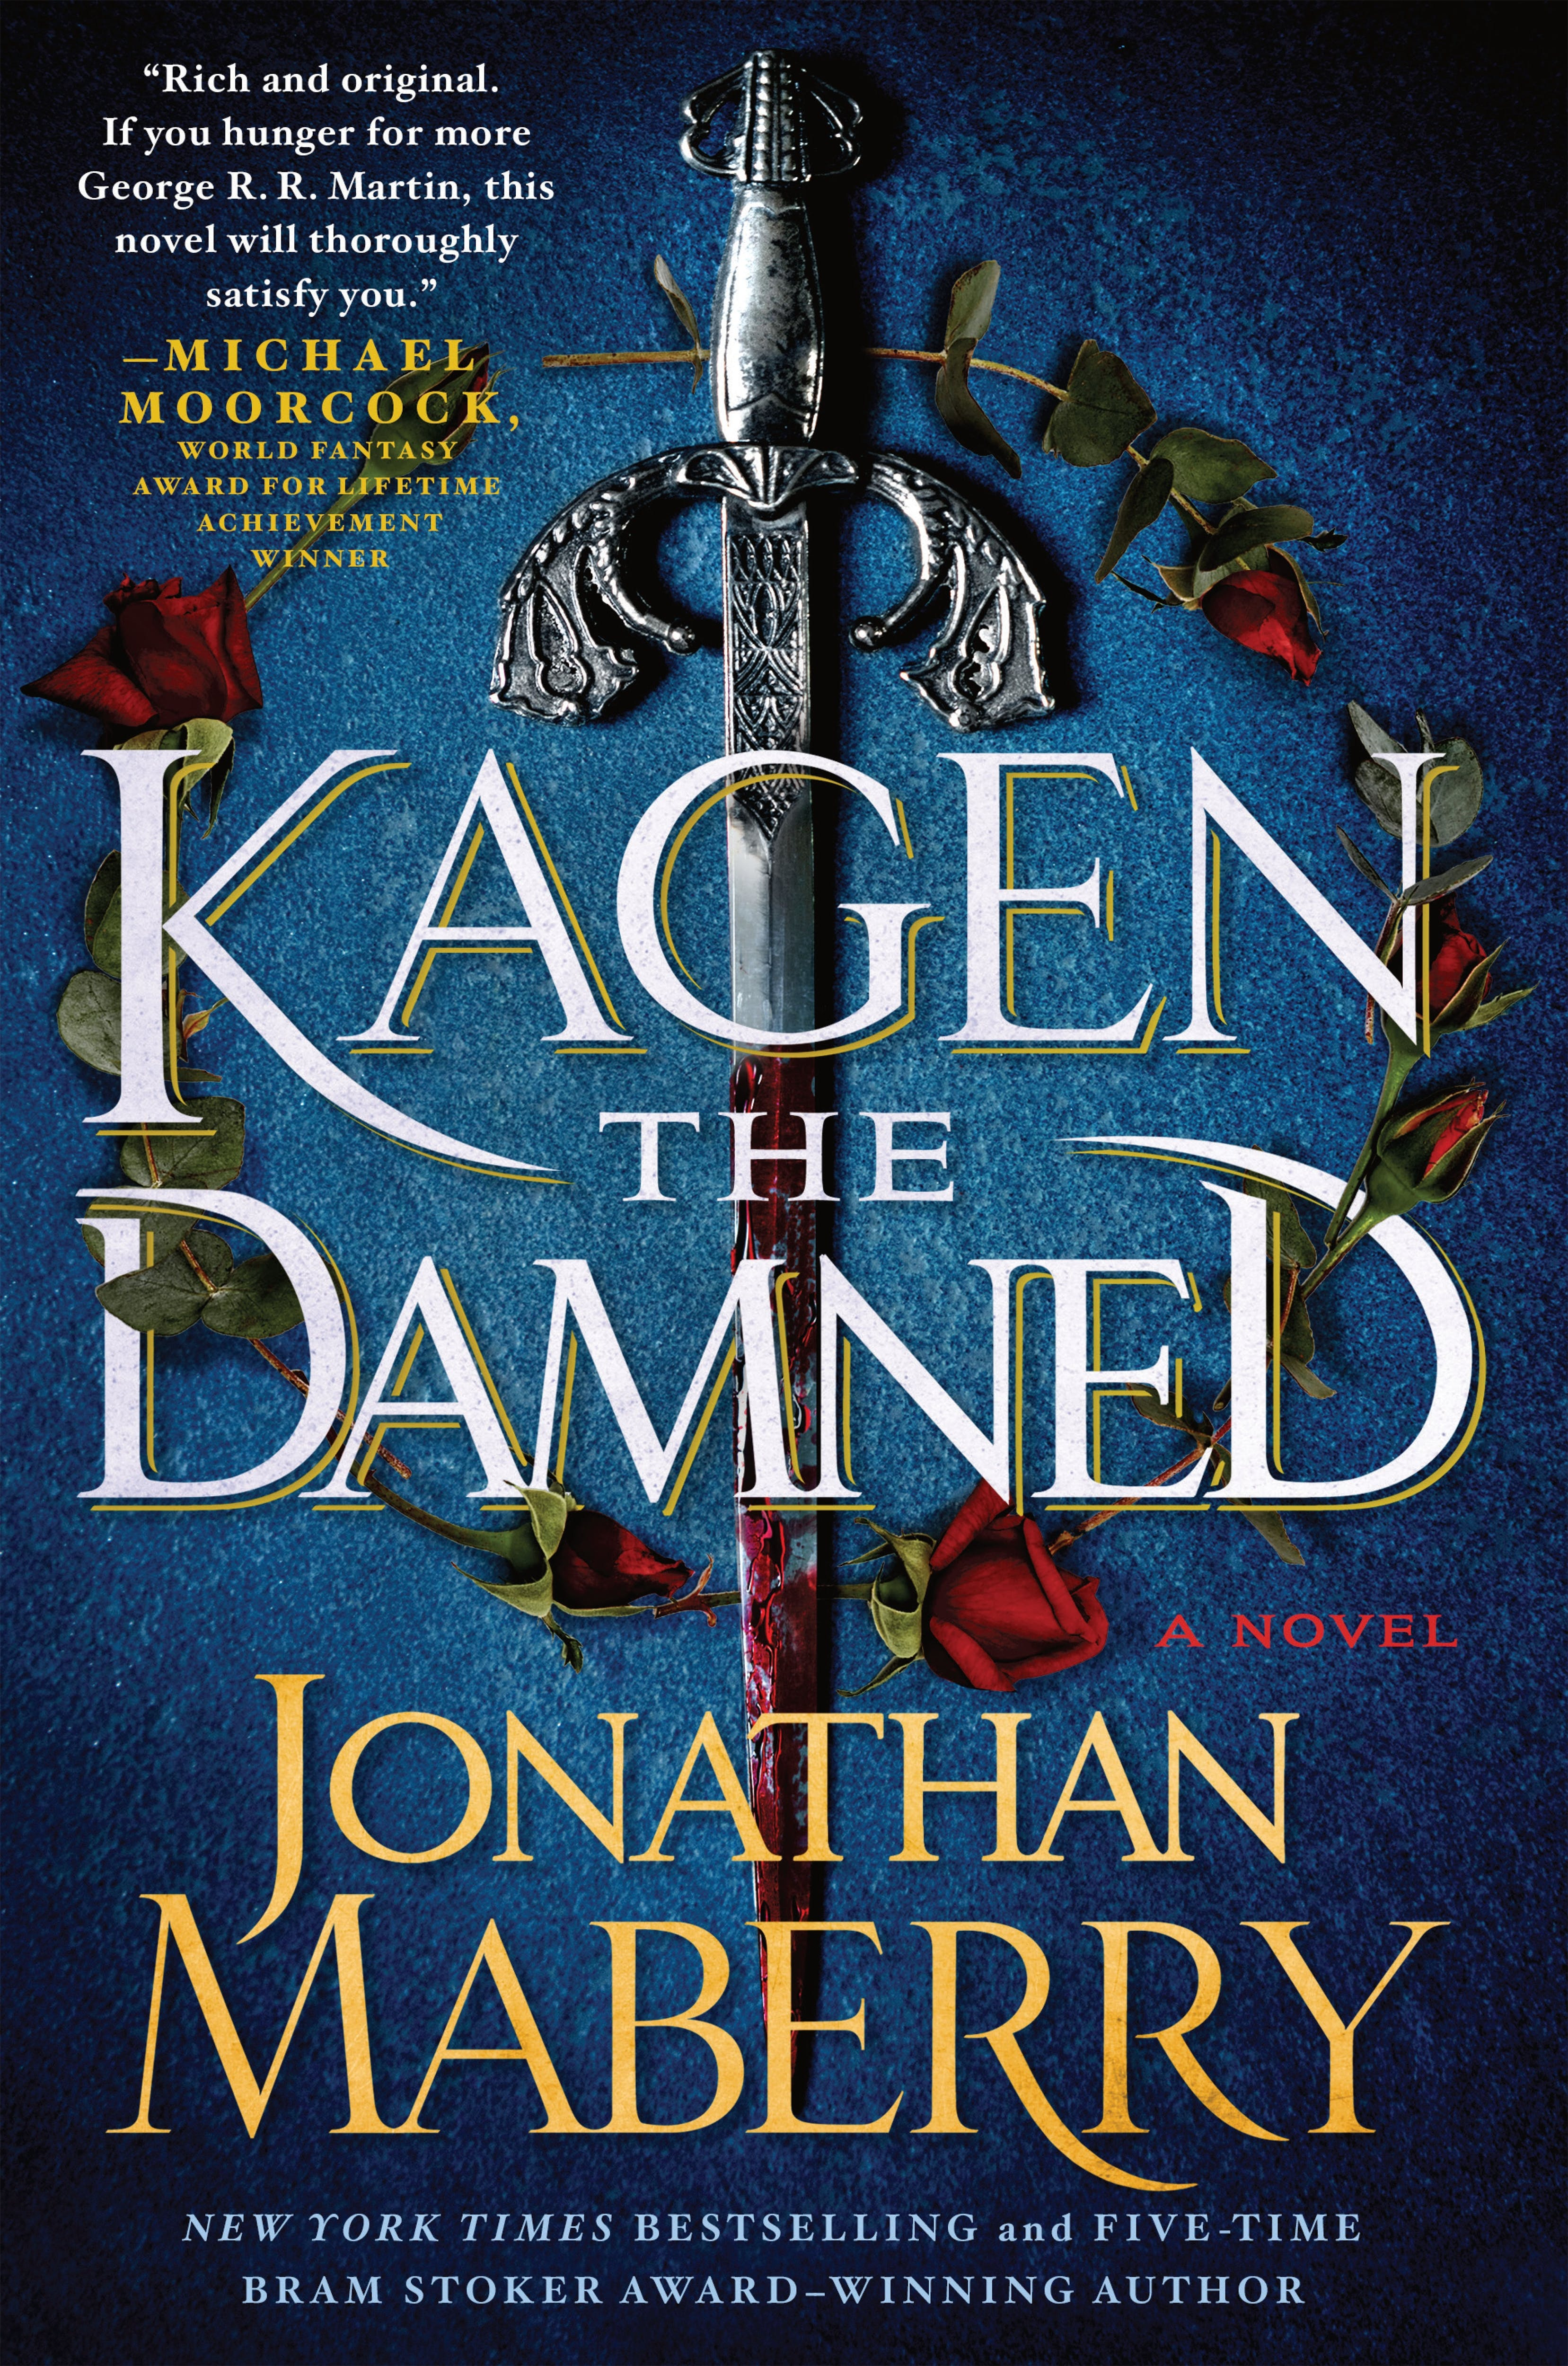 Image of Kagen the Damned